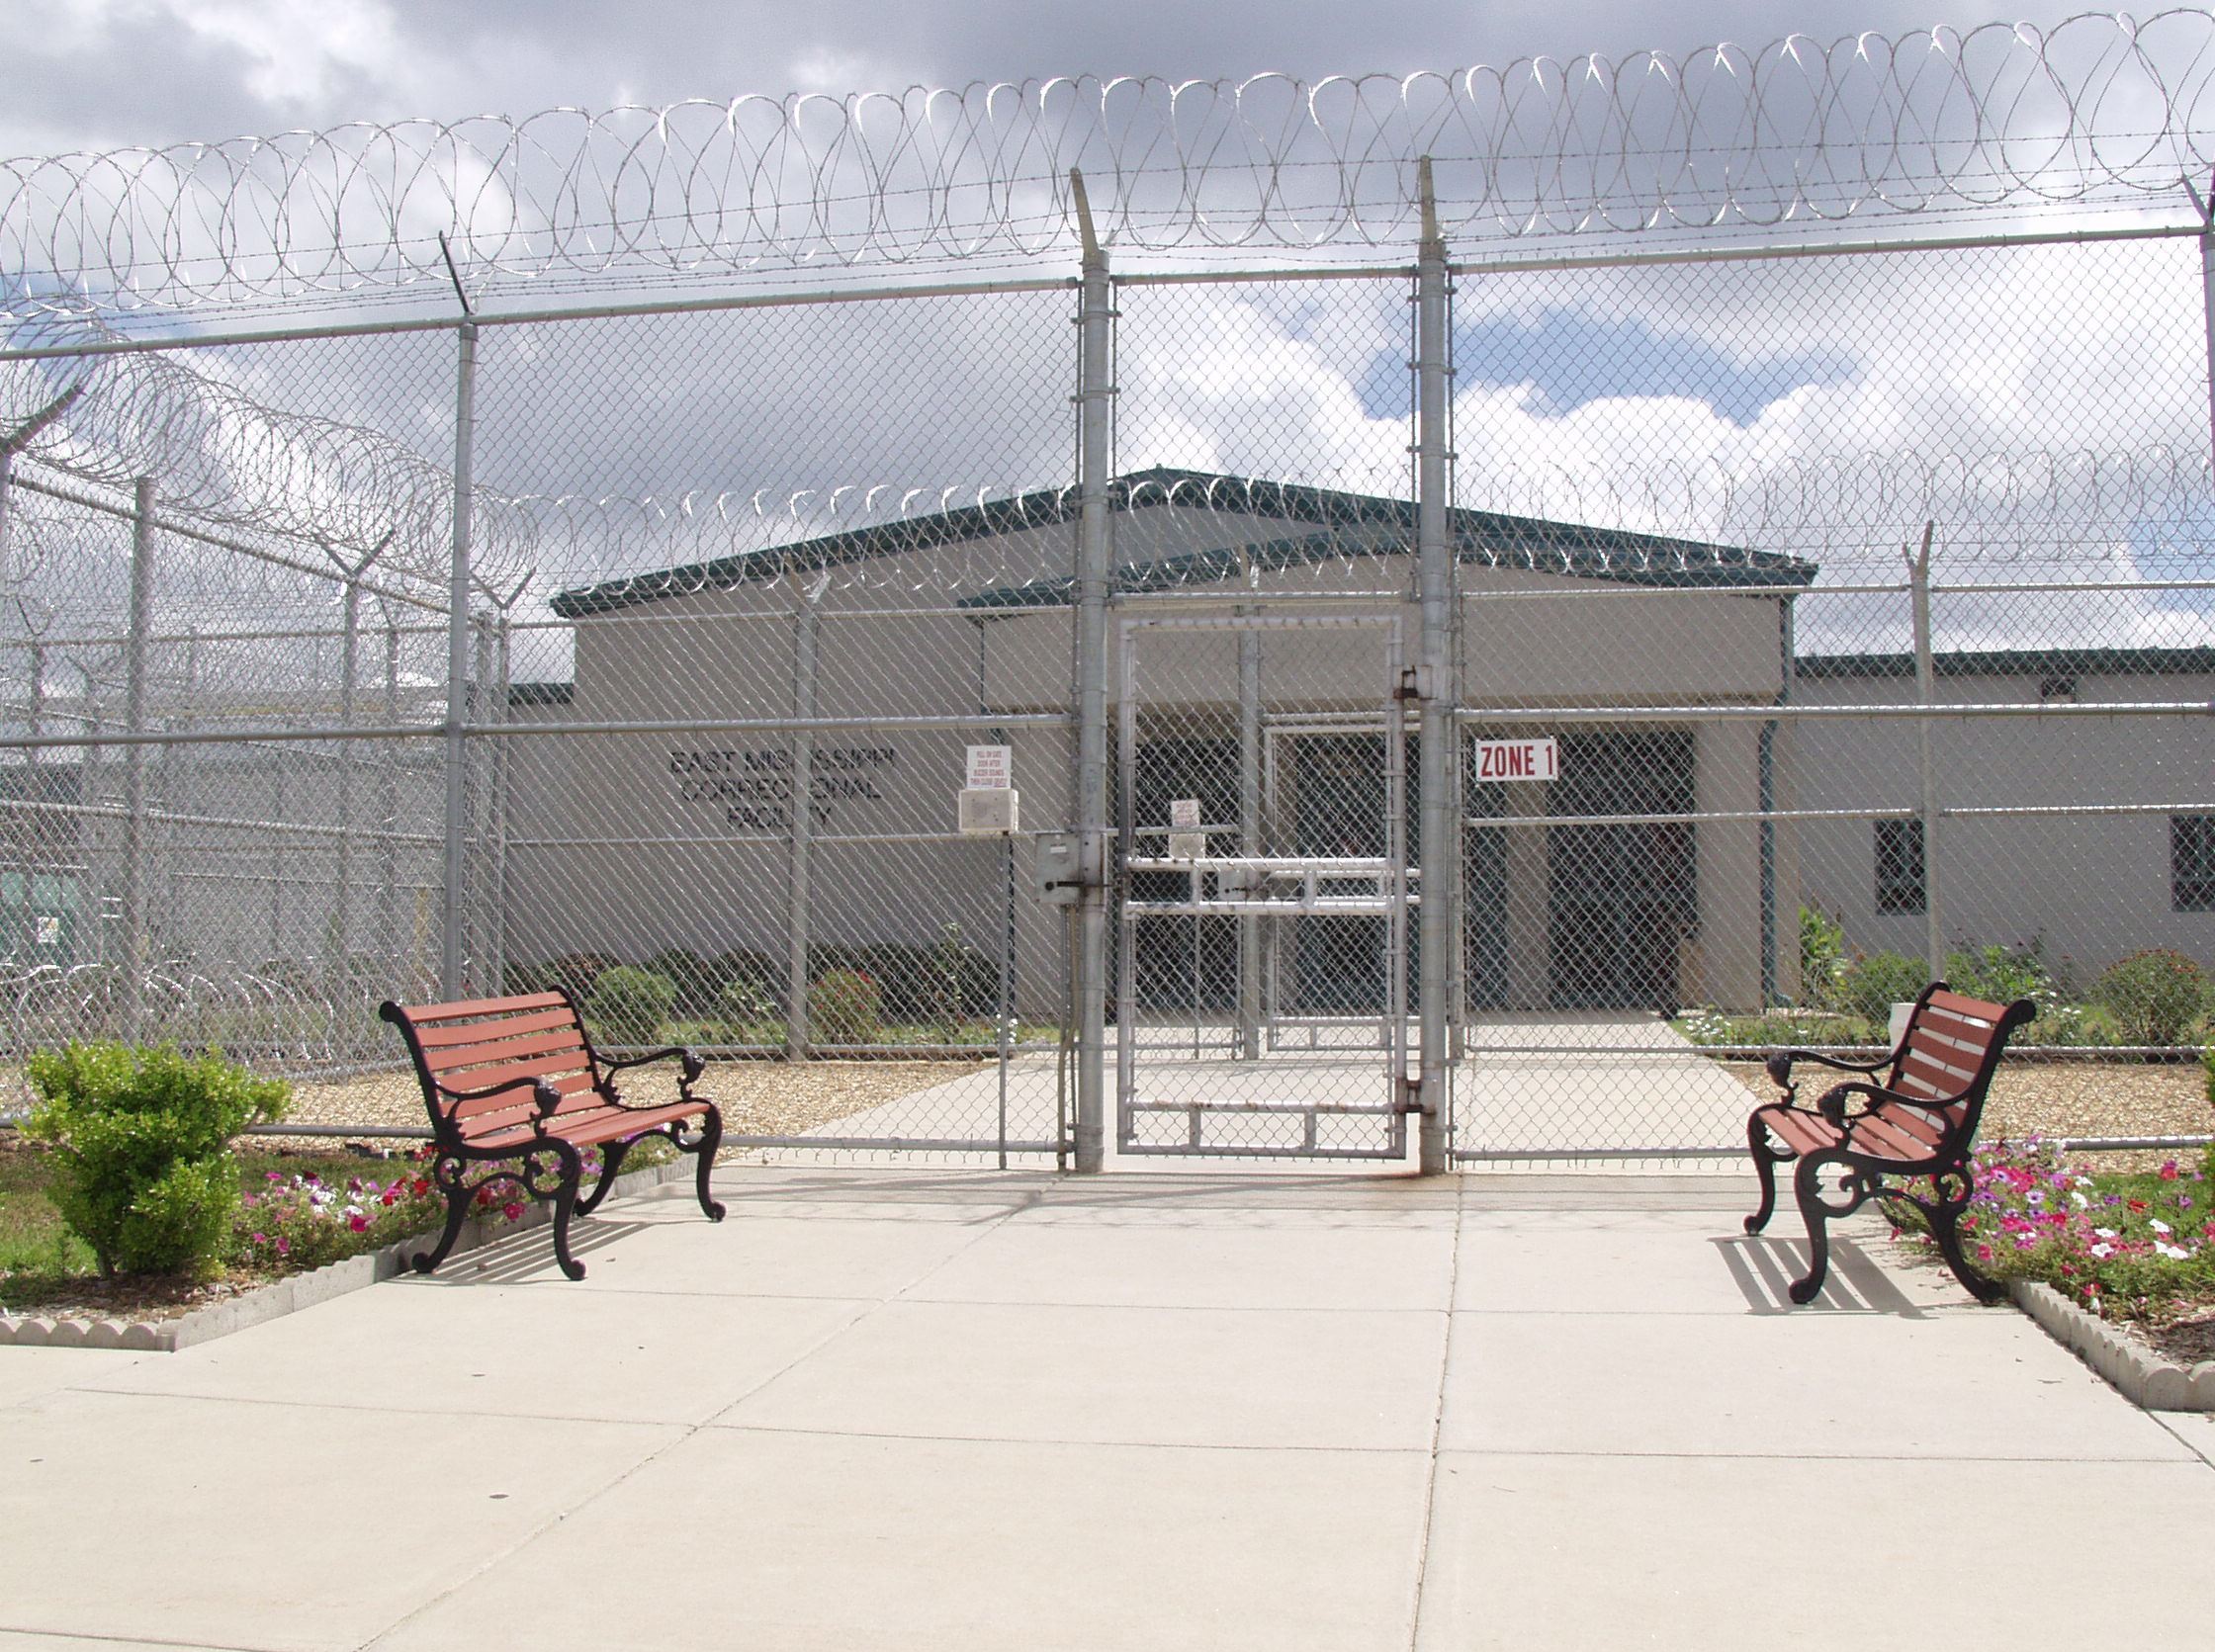 East Mississippi Correctional Facility in Meridian, the subject of a federal lawsuit over poor conditions, is run by the same company that is facing similar allegations of poor management and understaffing at the Wilkinson County Correctional Facility in Woodville.   Mississippi Department of Corrections